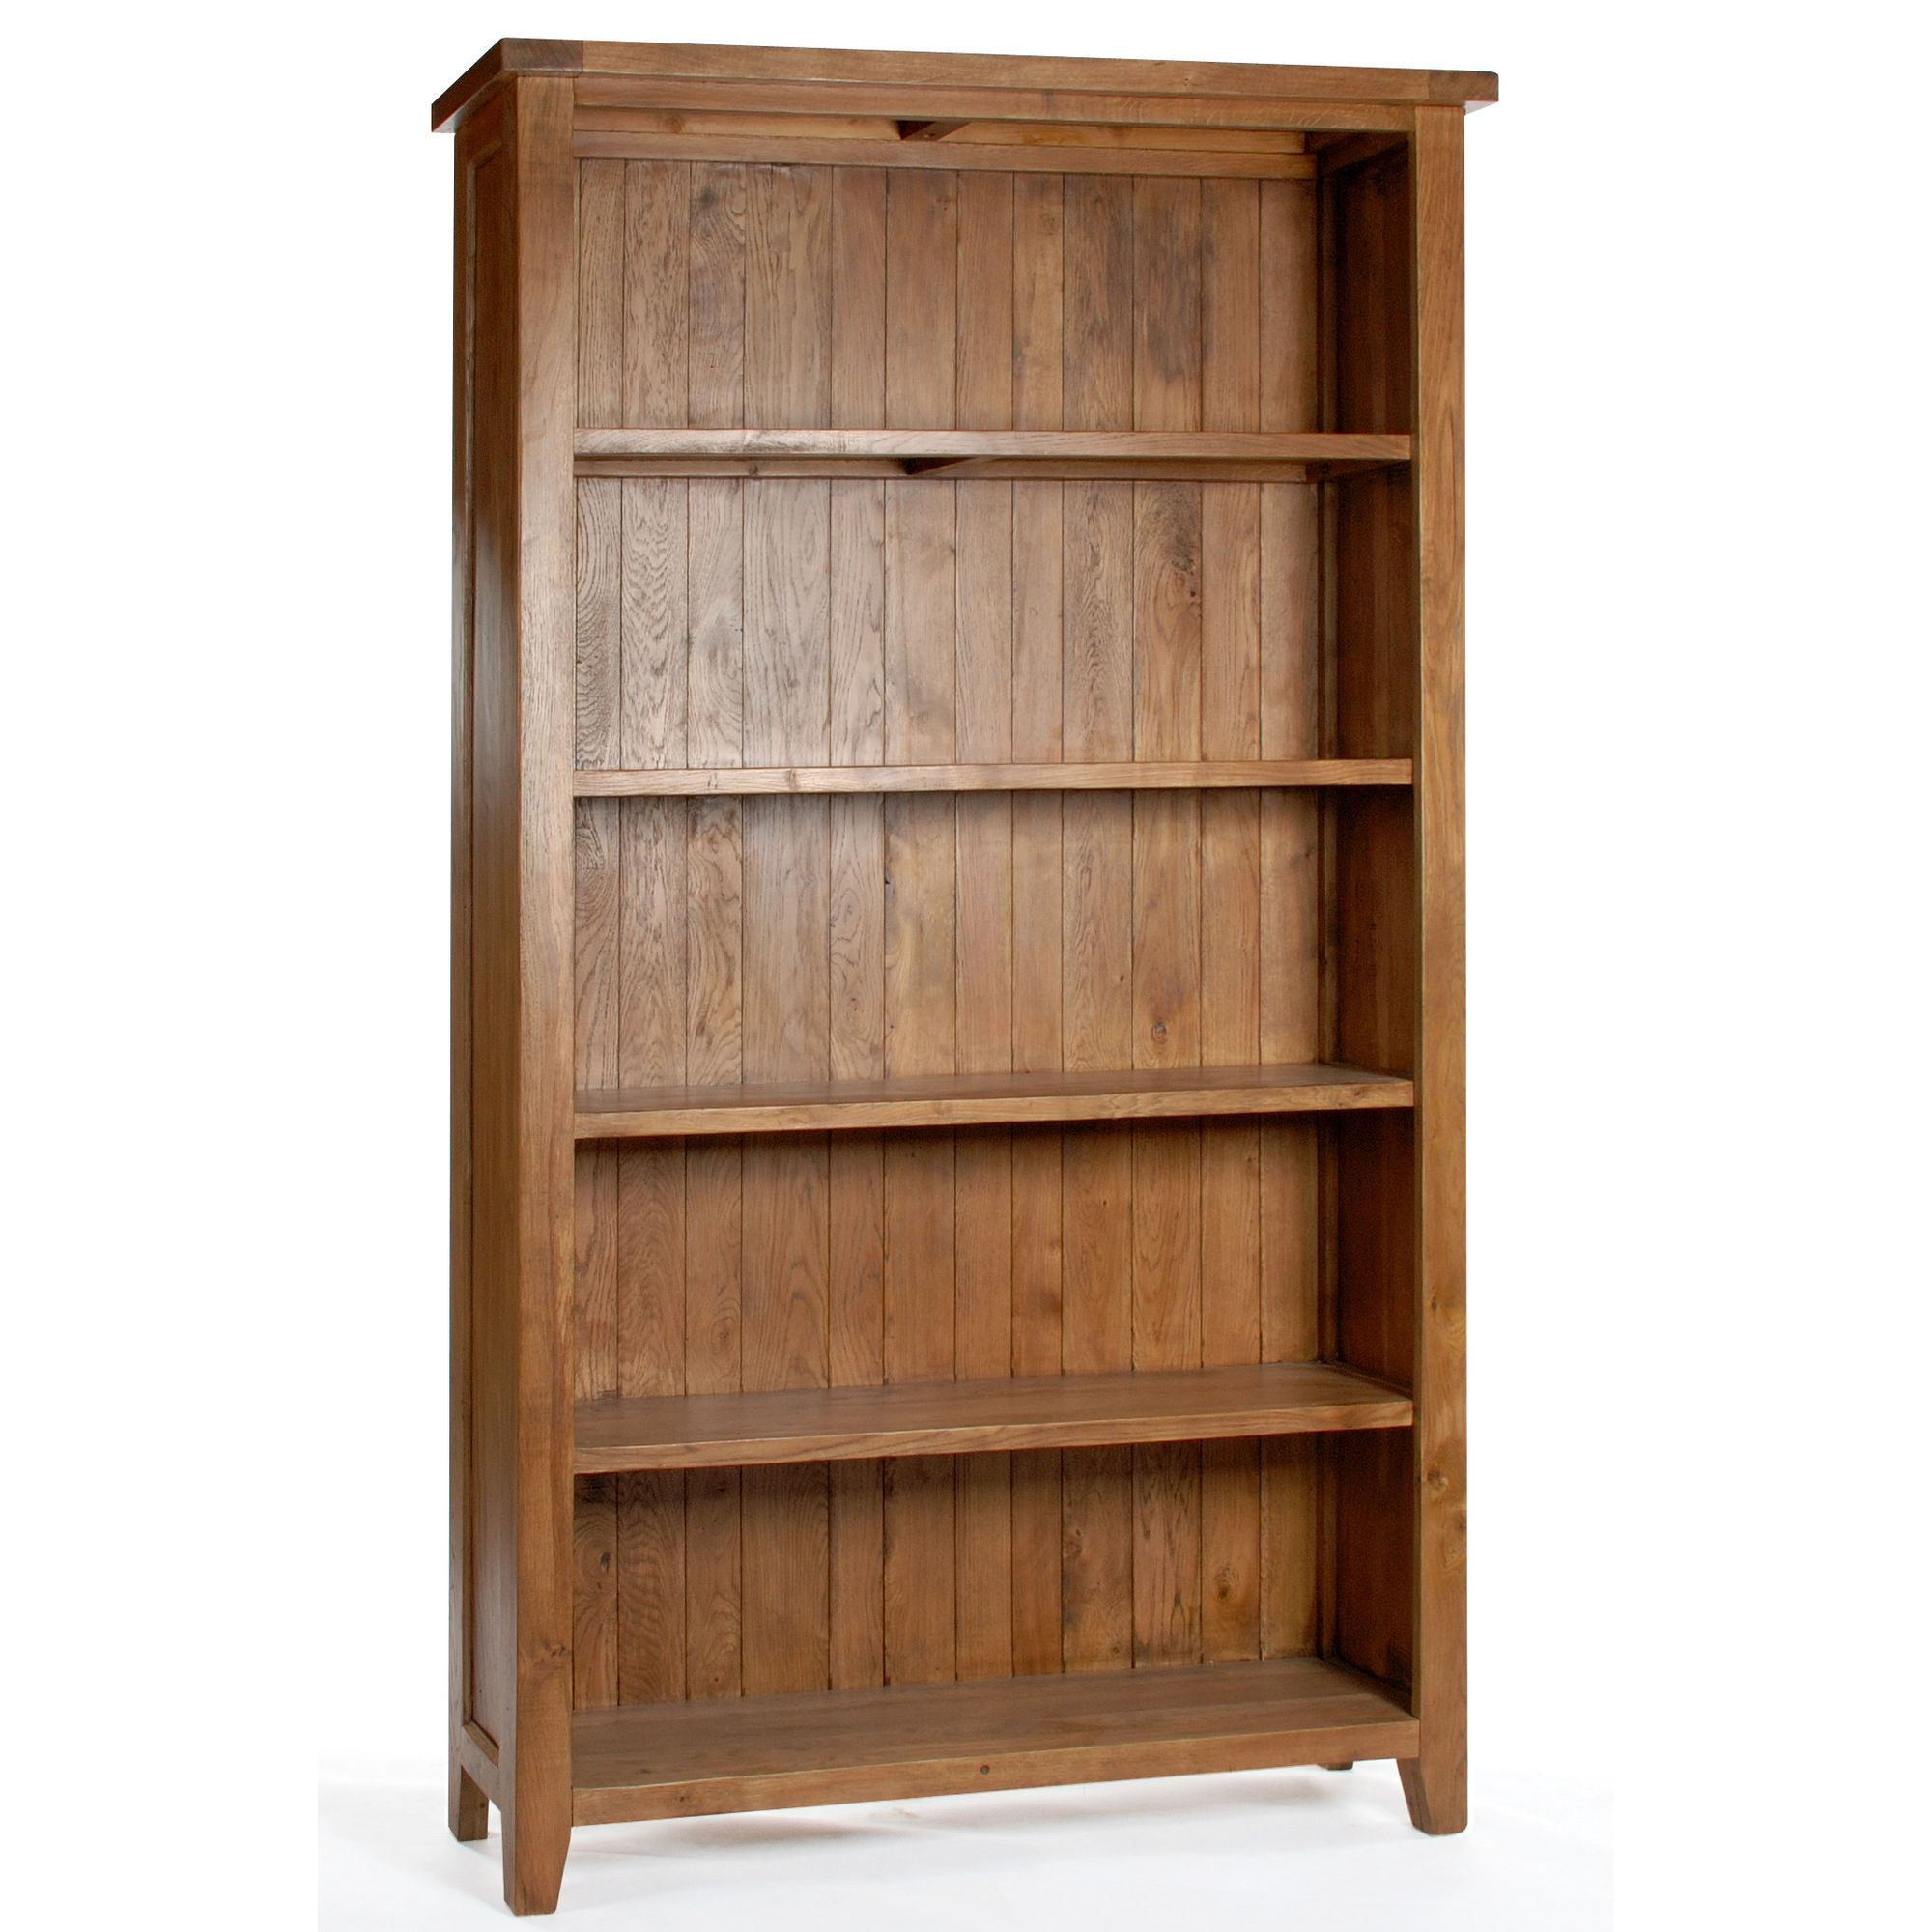 Wiseaction Florence Bookcase - Large at Tesco Direct